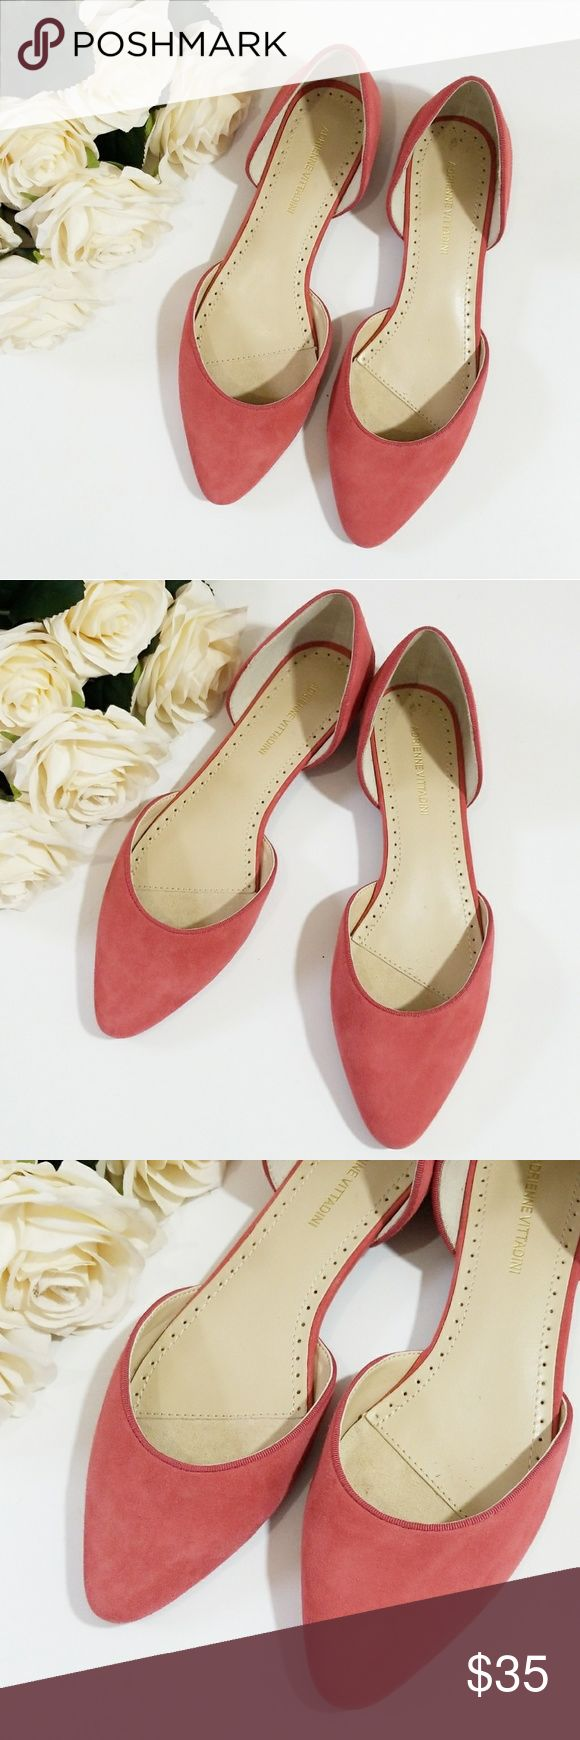 Adrienne Vittadini Flats Cute Adrienne Vittadini Flats. Size 7.5. Excellent Pre-Owned Condition! Adrienne Vittadini Shoes Flats & Loafers